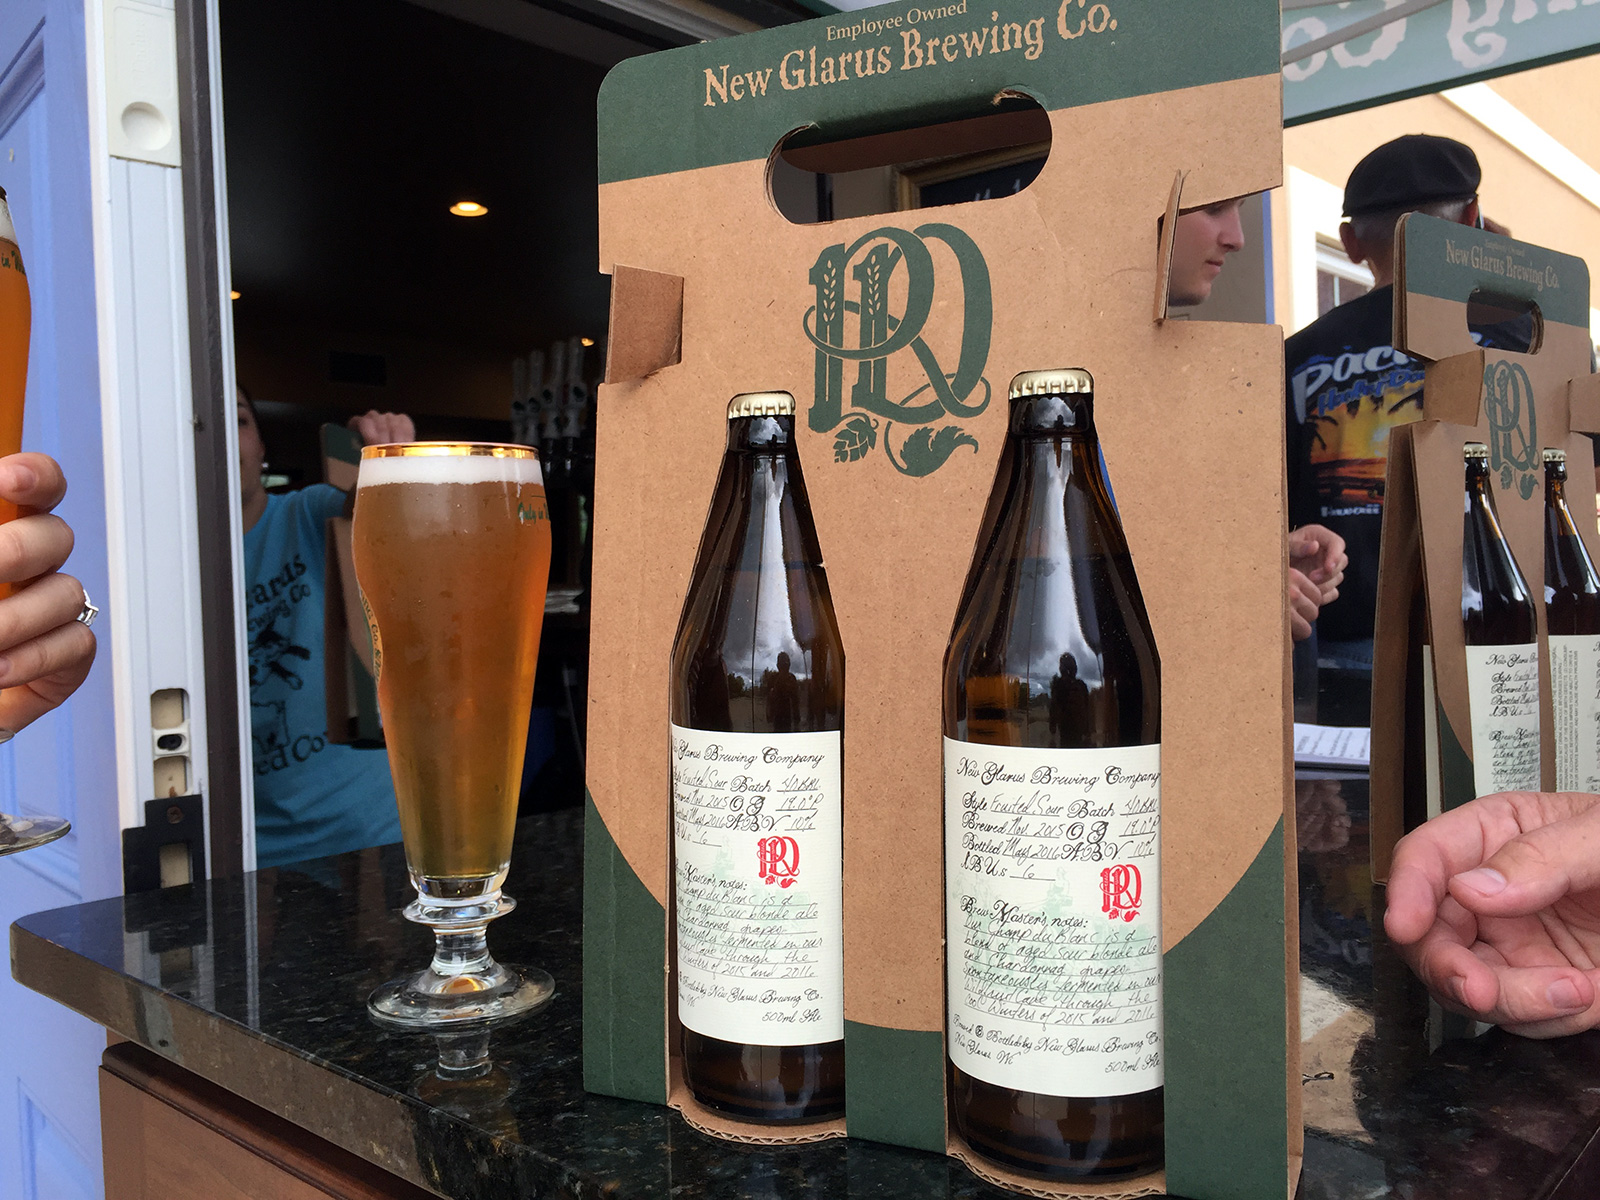 New Glarus Brewing Co. by Jets Like Taxis